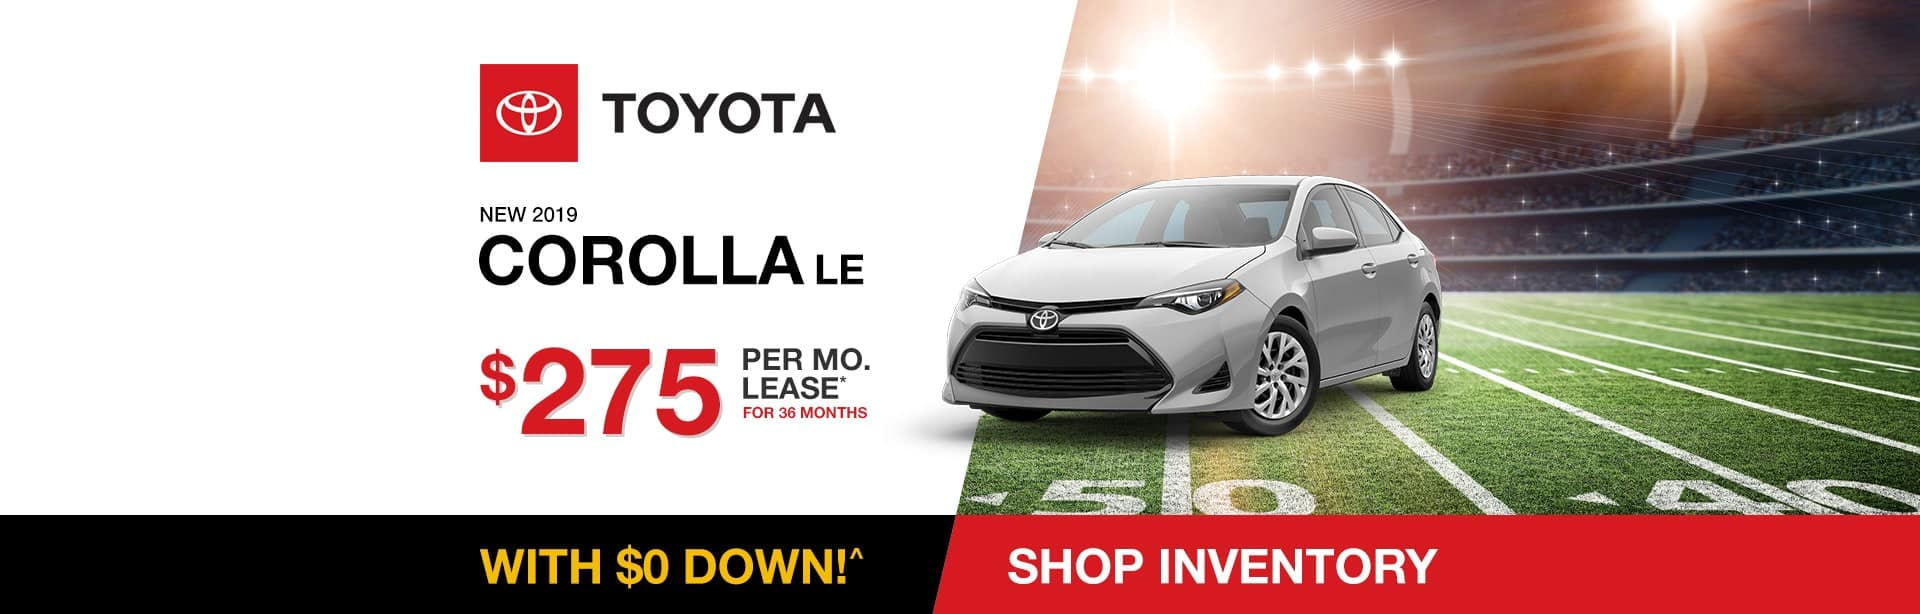 Toyota Corolla Lease Special near Greenwood, Indiana